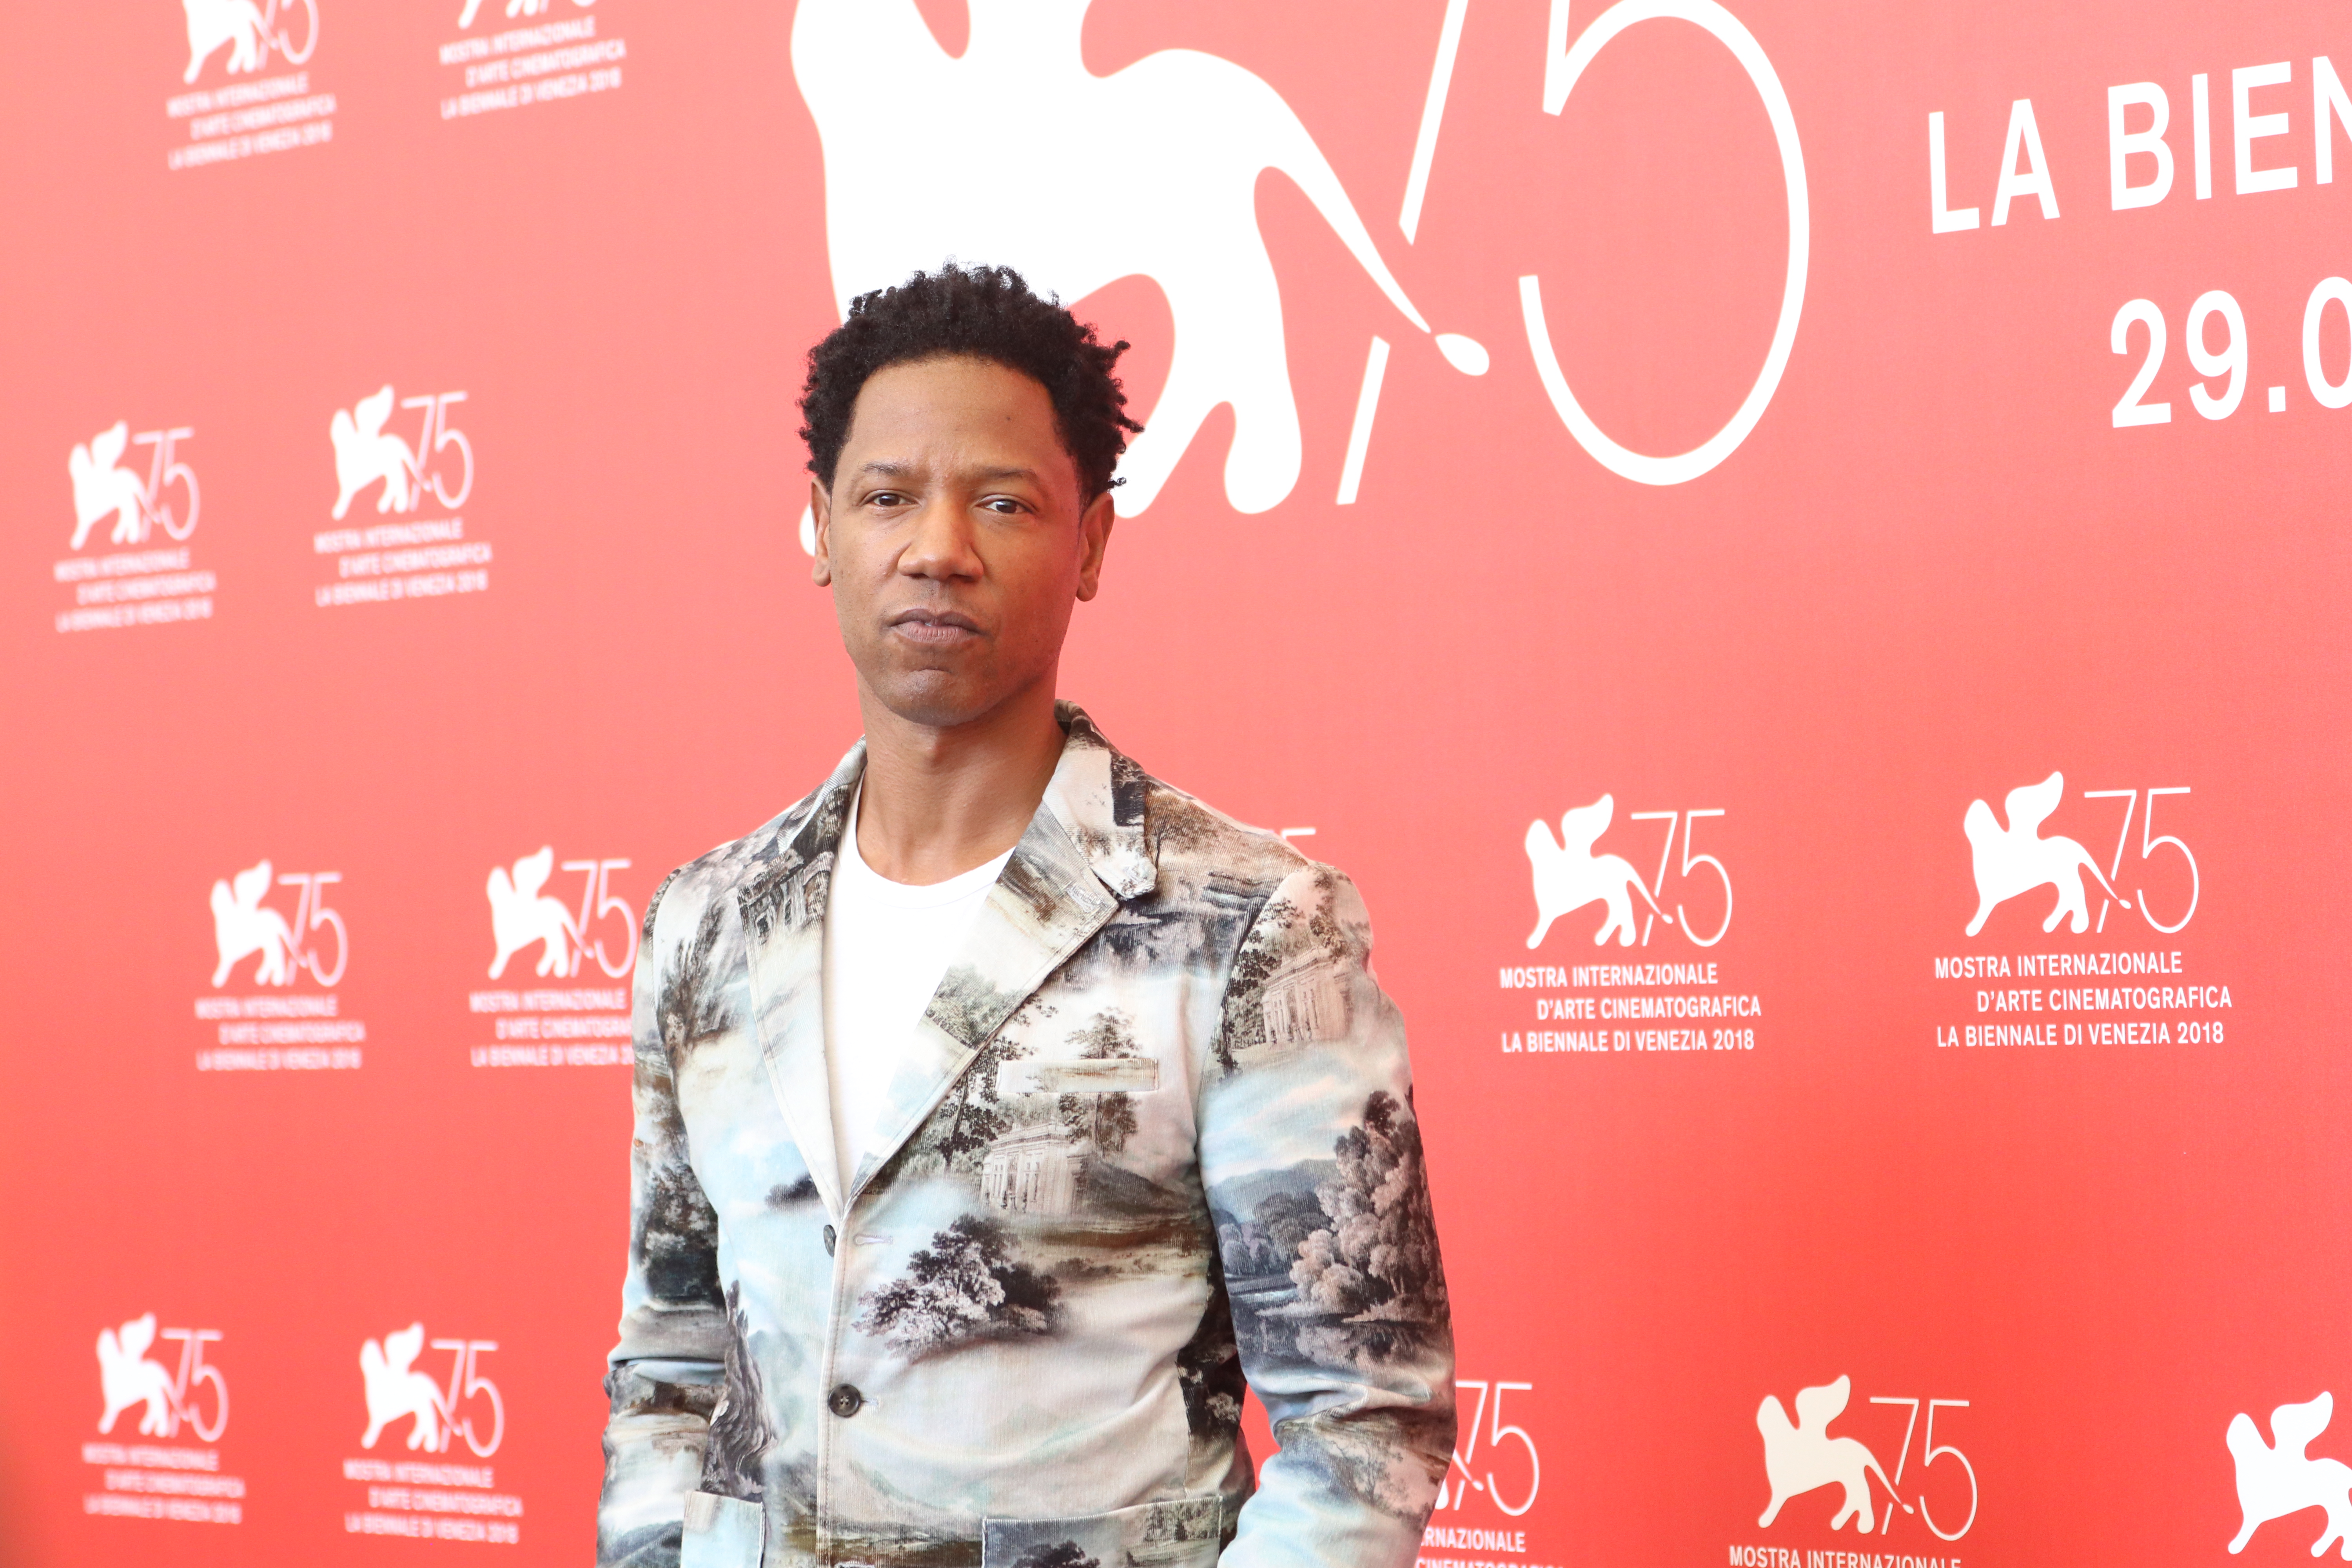 Venezia 2018: Tory Kittles al photocall di Dragged Across Concrete